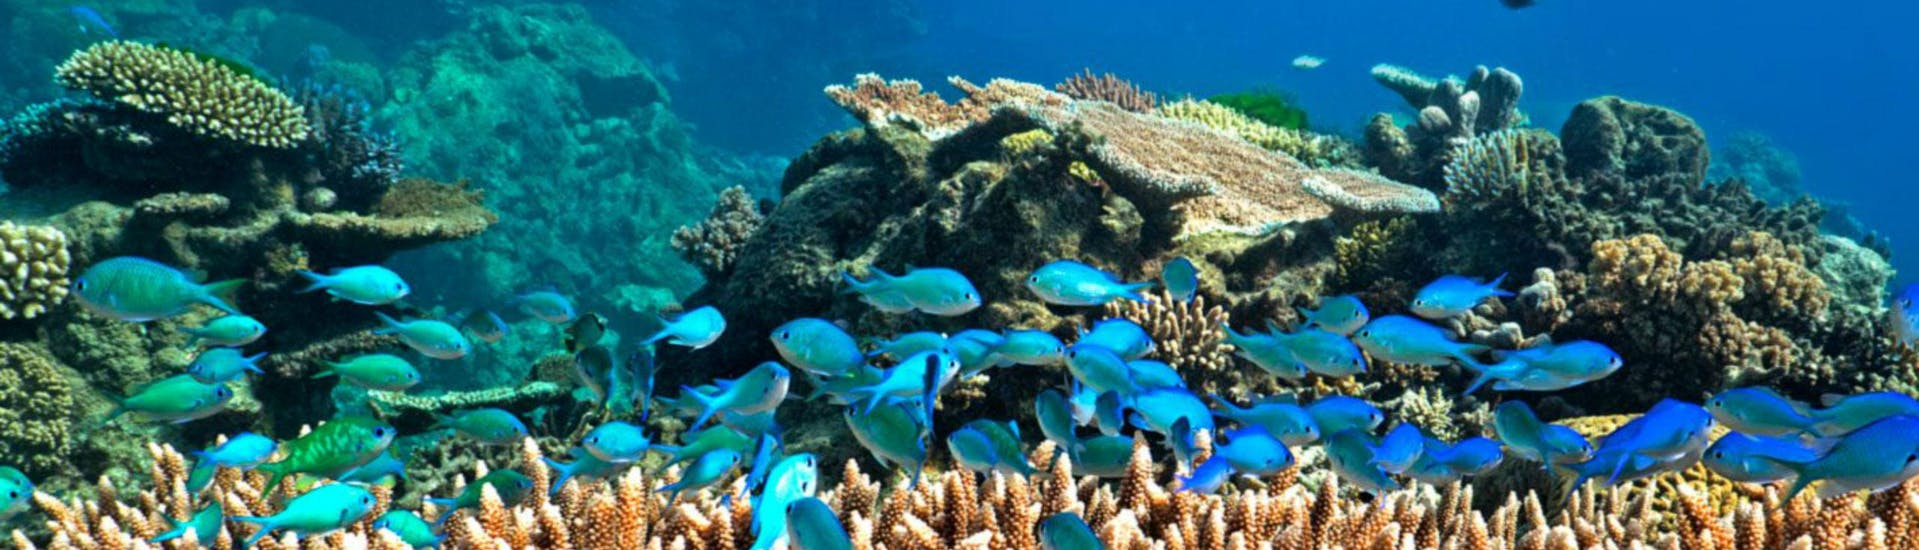 A shoal of blue fish is swimming around the coral reef, as can be seen while Scuba Diving at the Great Barrier Reef for Certified Divers with Ocean Free.